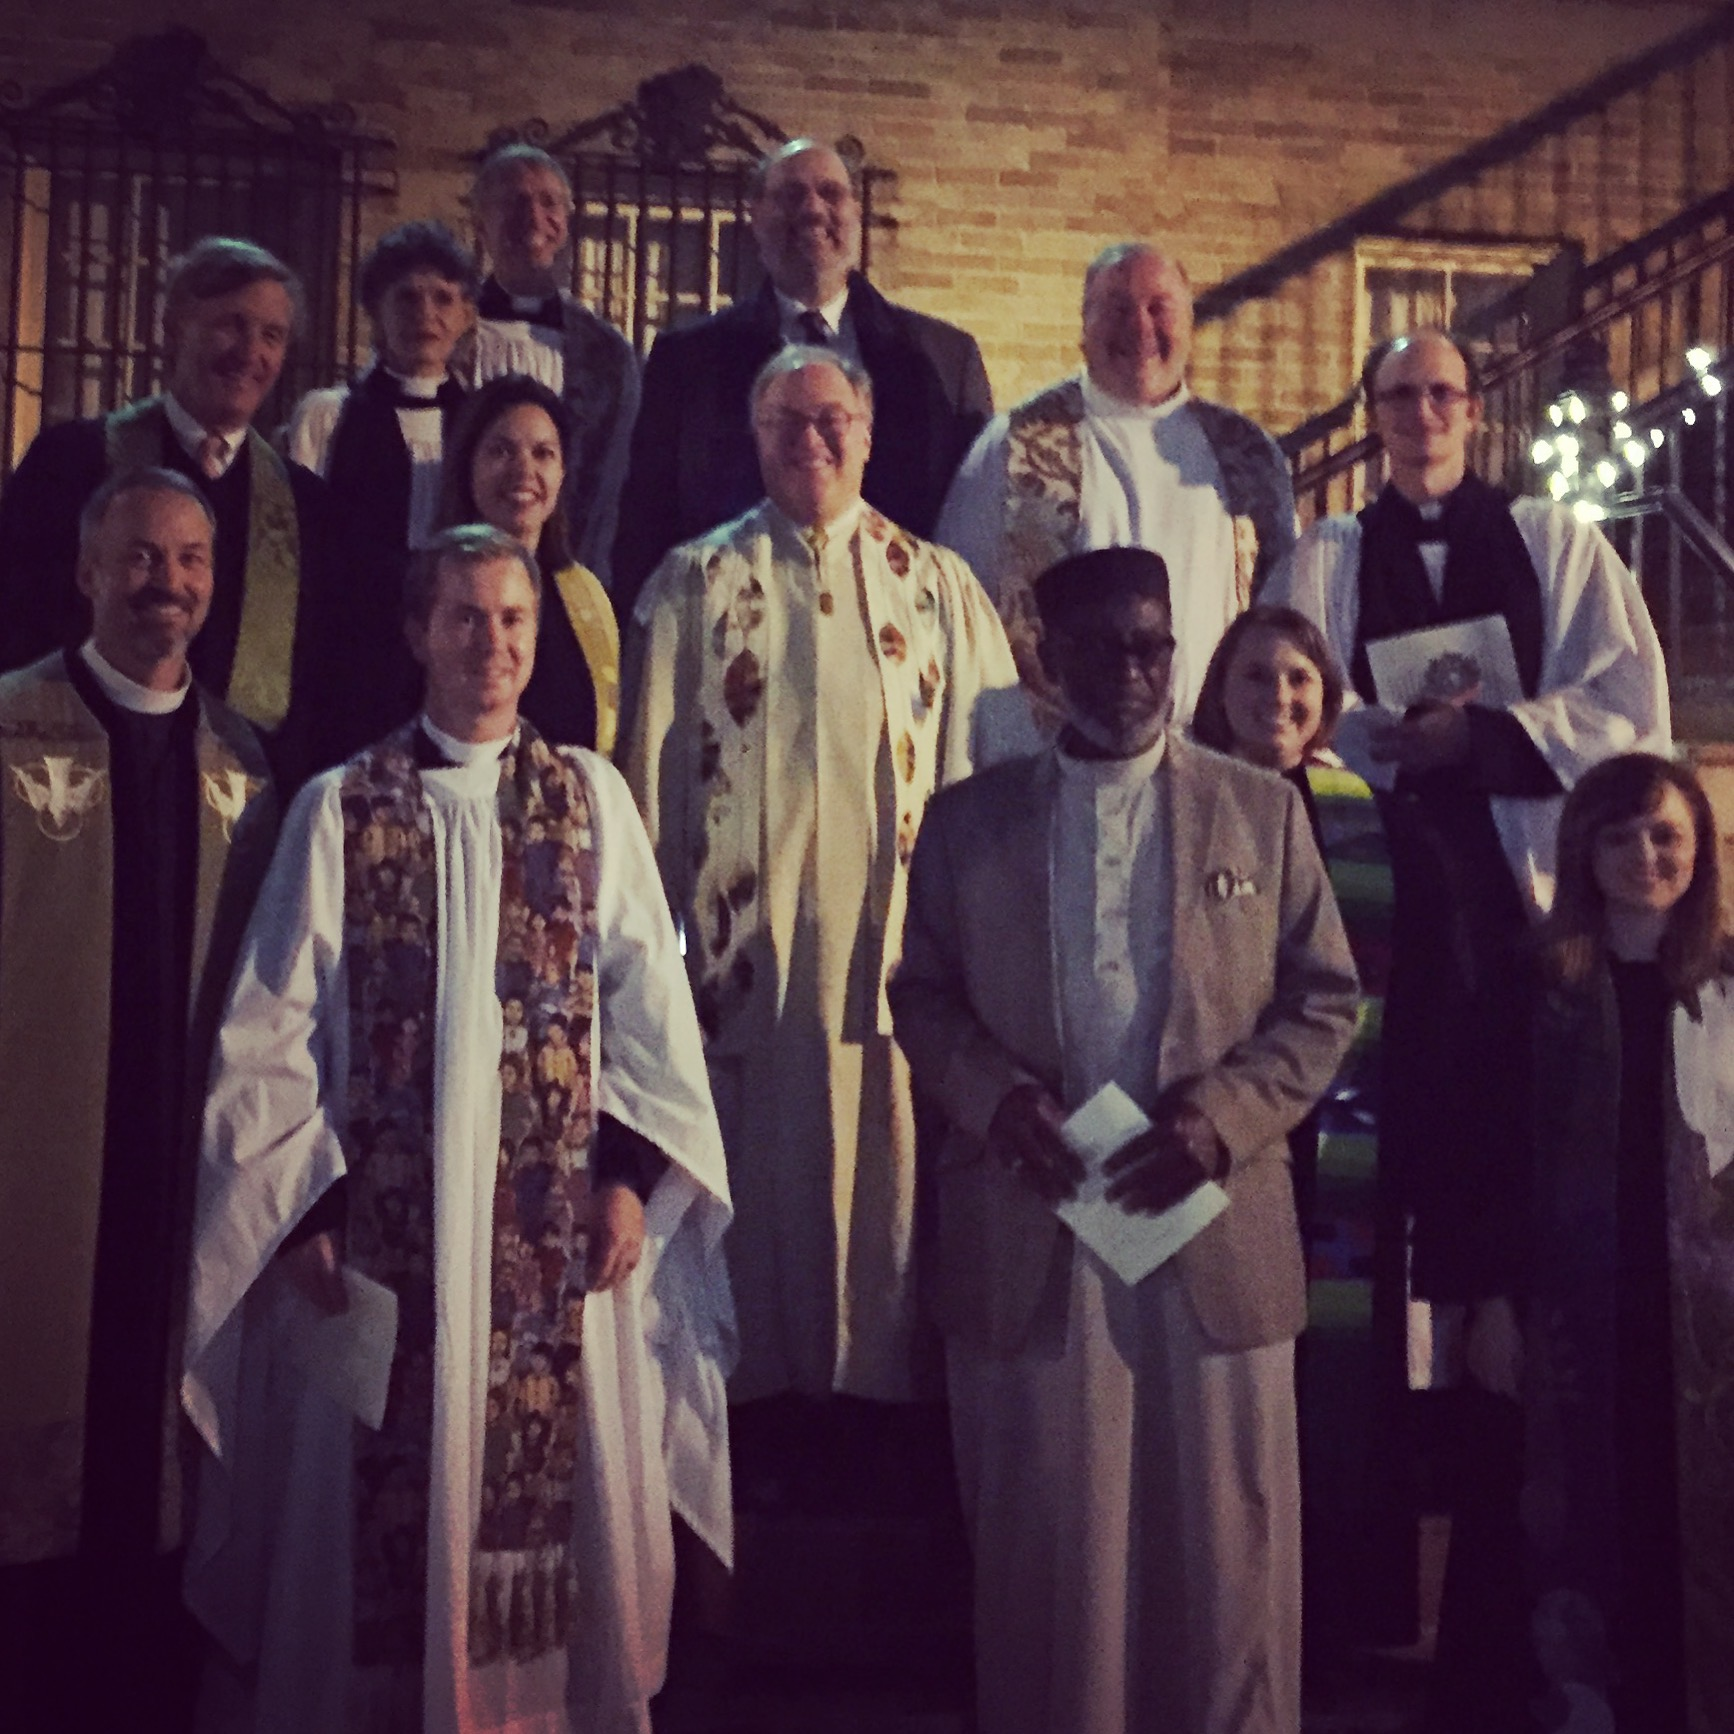 30th Annual Uptown Interfaith Thanksgiving Service